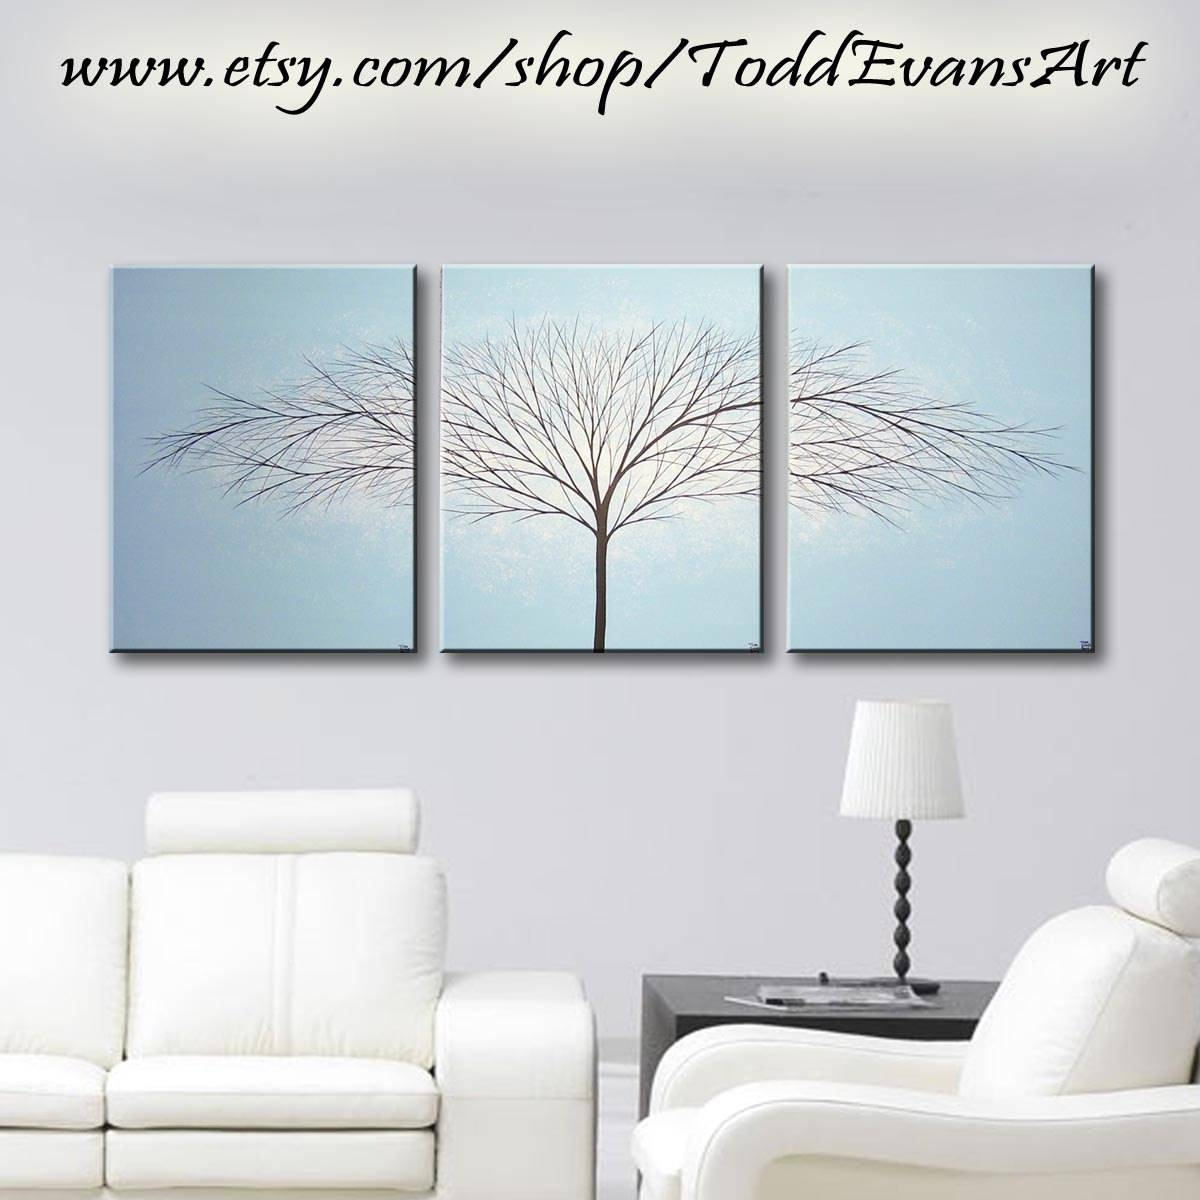 Tree Painting 3 Piece Wall Art Large Canvas Art Painting Inside Newest 3 Piece Canvas Wall Art Sets (View 12 of 20)